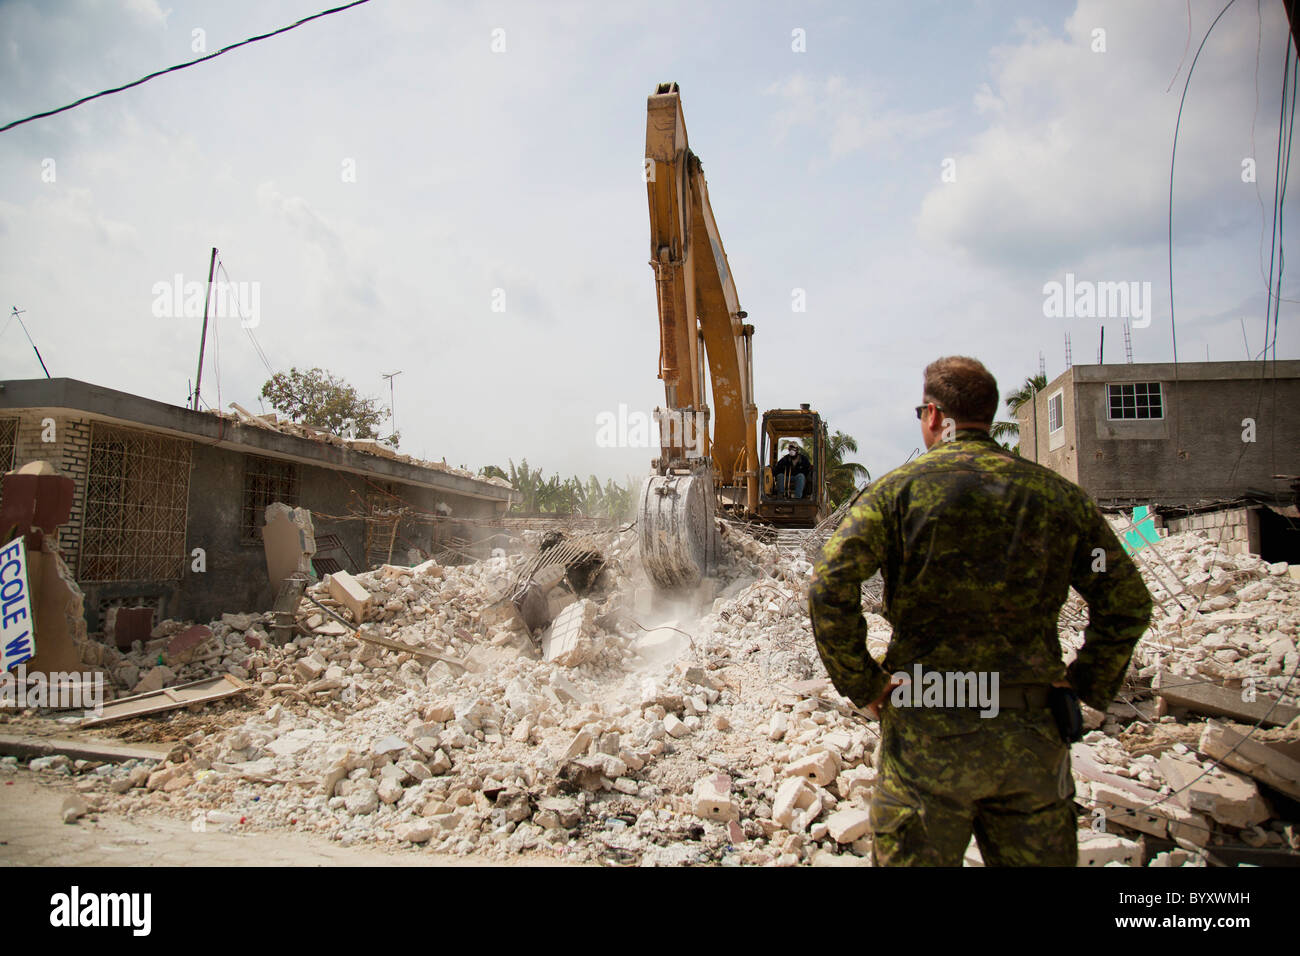 military hard at work to rebuild haiti; port-au-prince, haiti - Stock Image